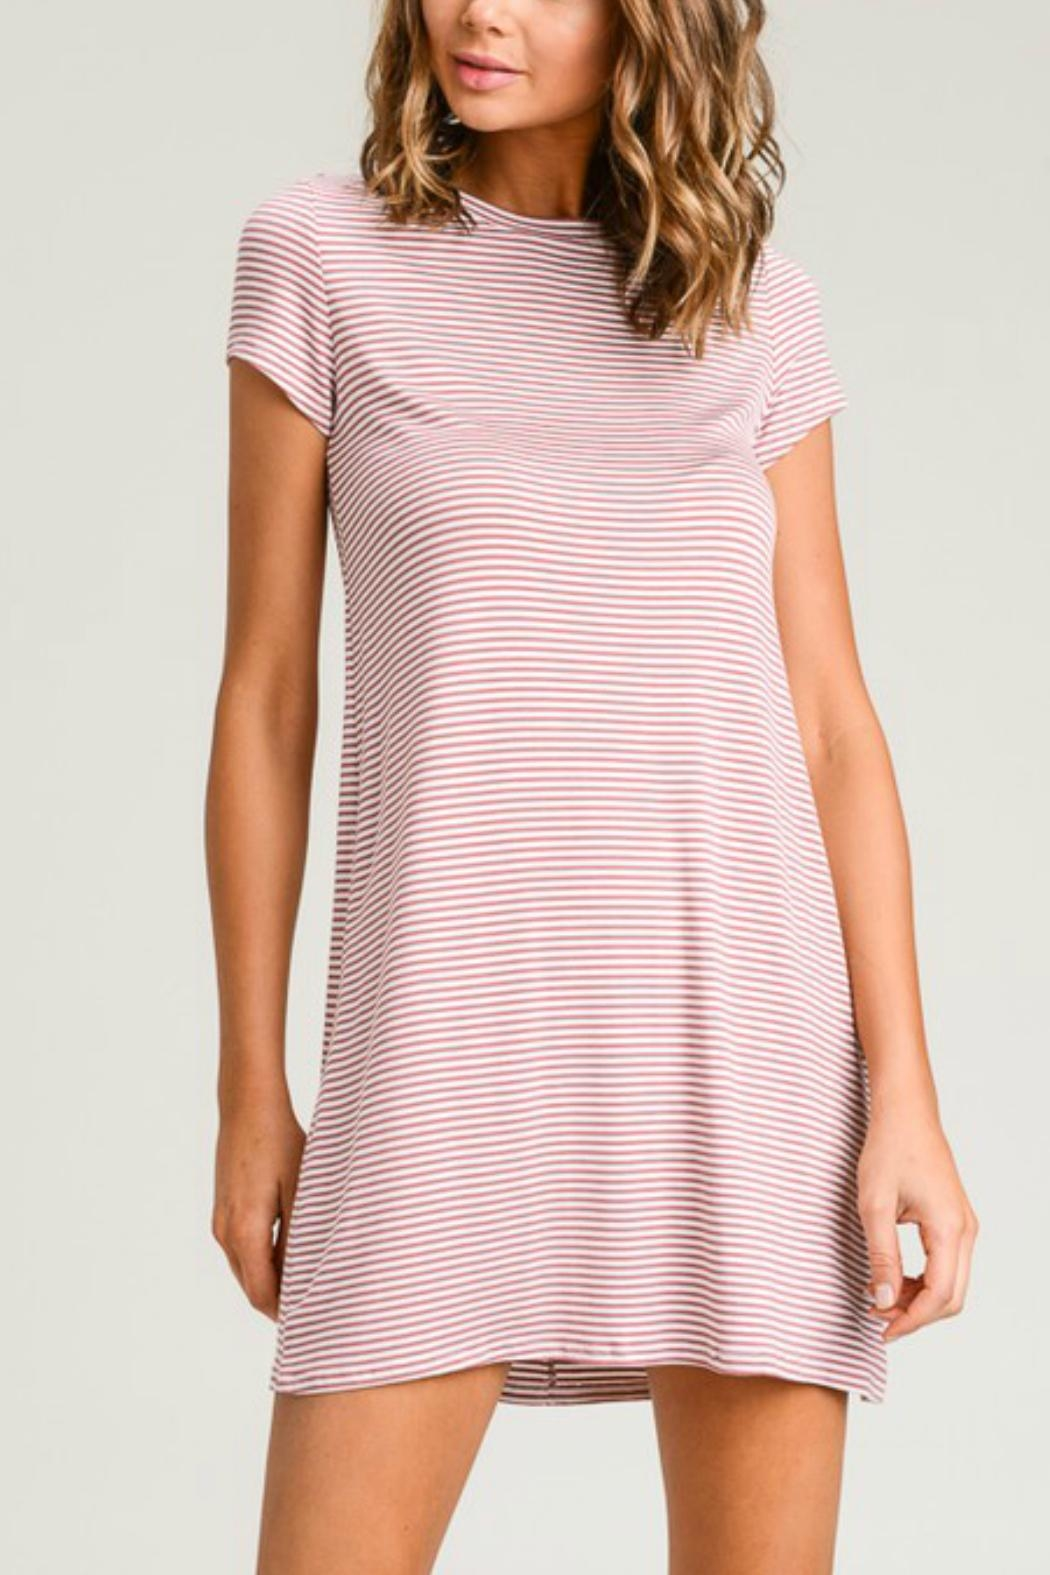 hot-selling real most desirable fashion great look Wasabi + Mint Pin-Striped Tshirt Dress from California by ...